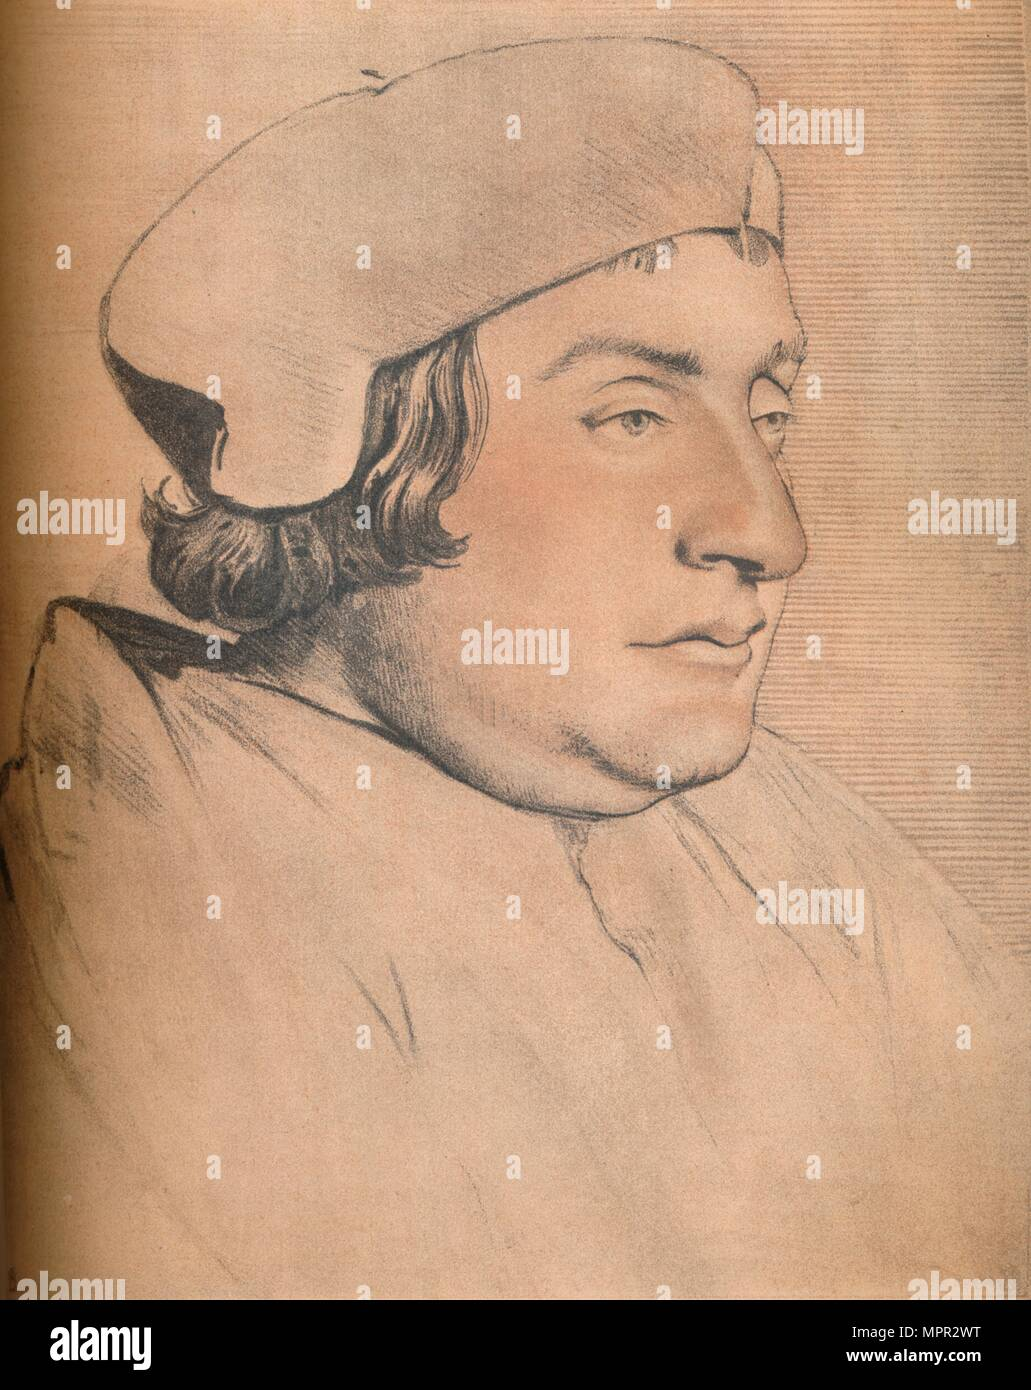 'Portrait of a Man', 1903. Artist: Hans Holbein the Younger. - Stock Image